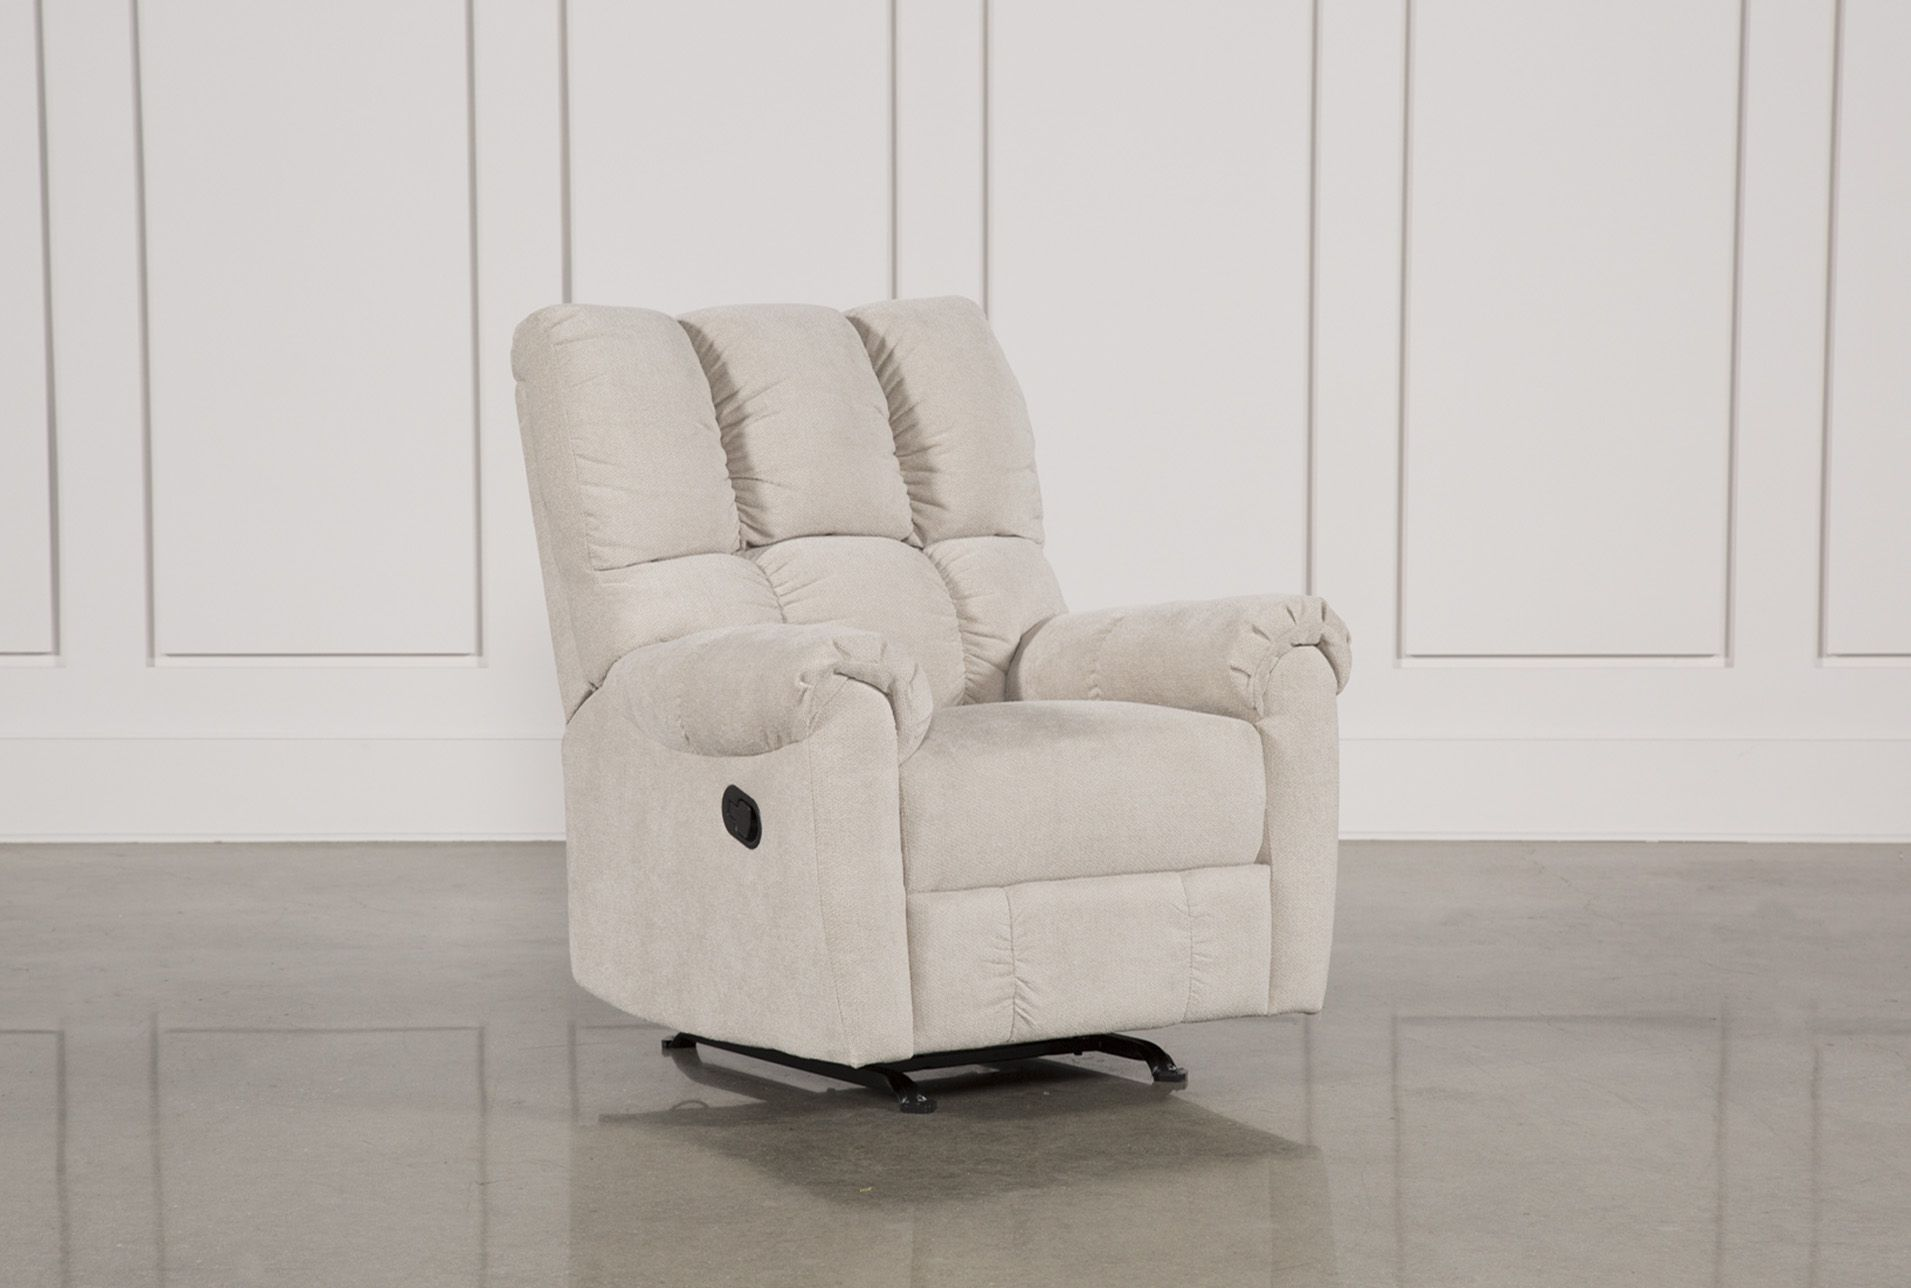 Rocker Recliner, Sloan Grey $195 | Recliner, Chair, Living